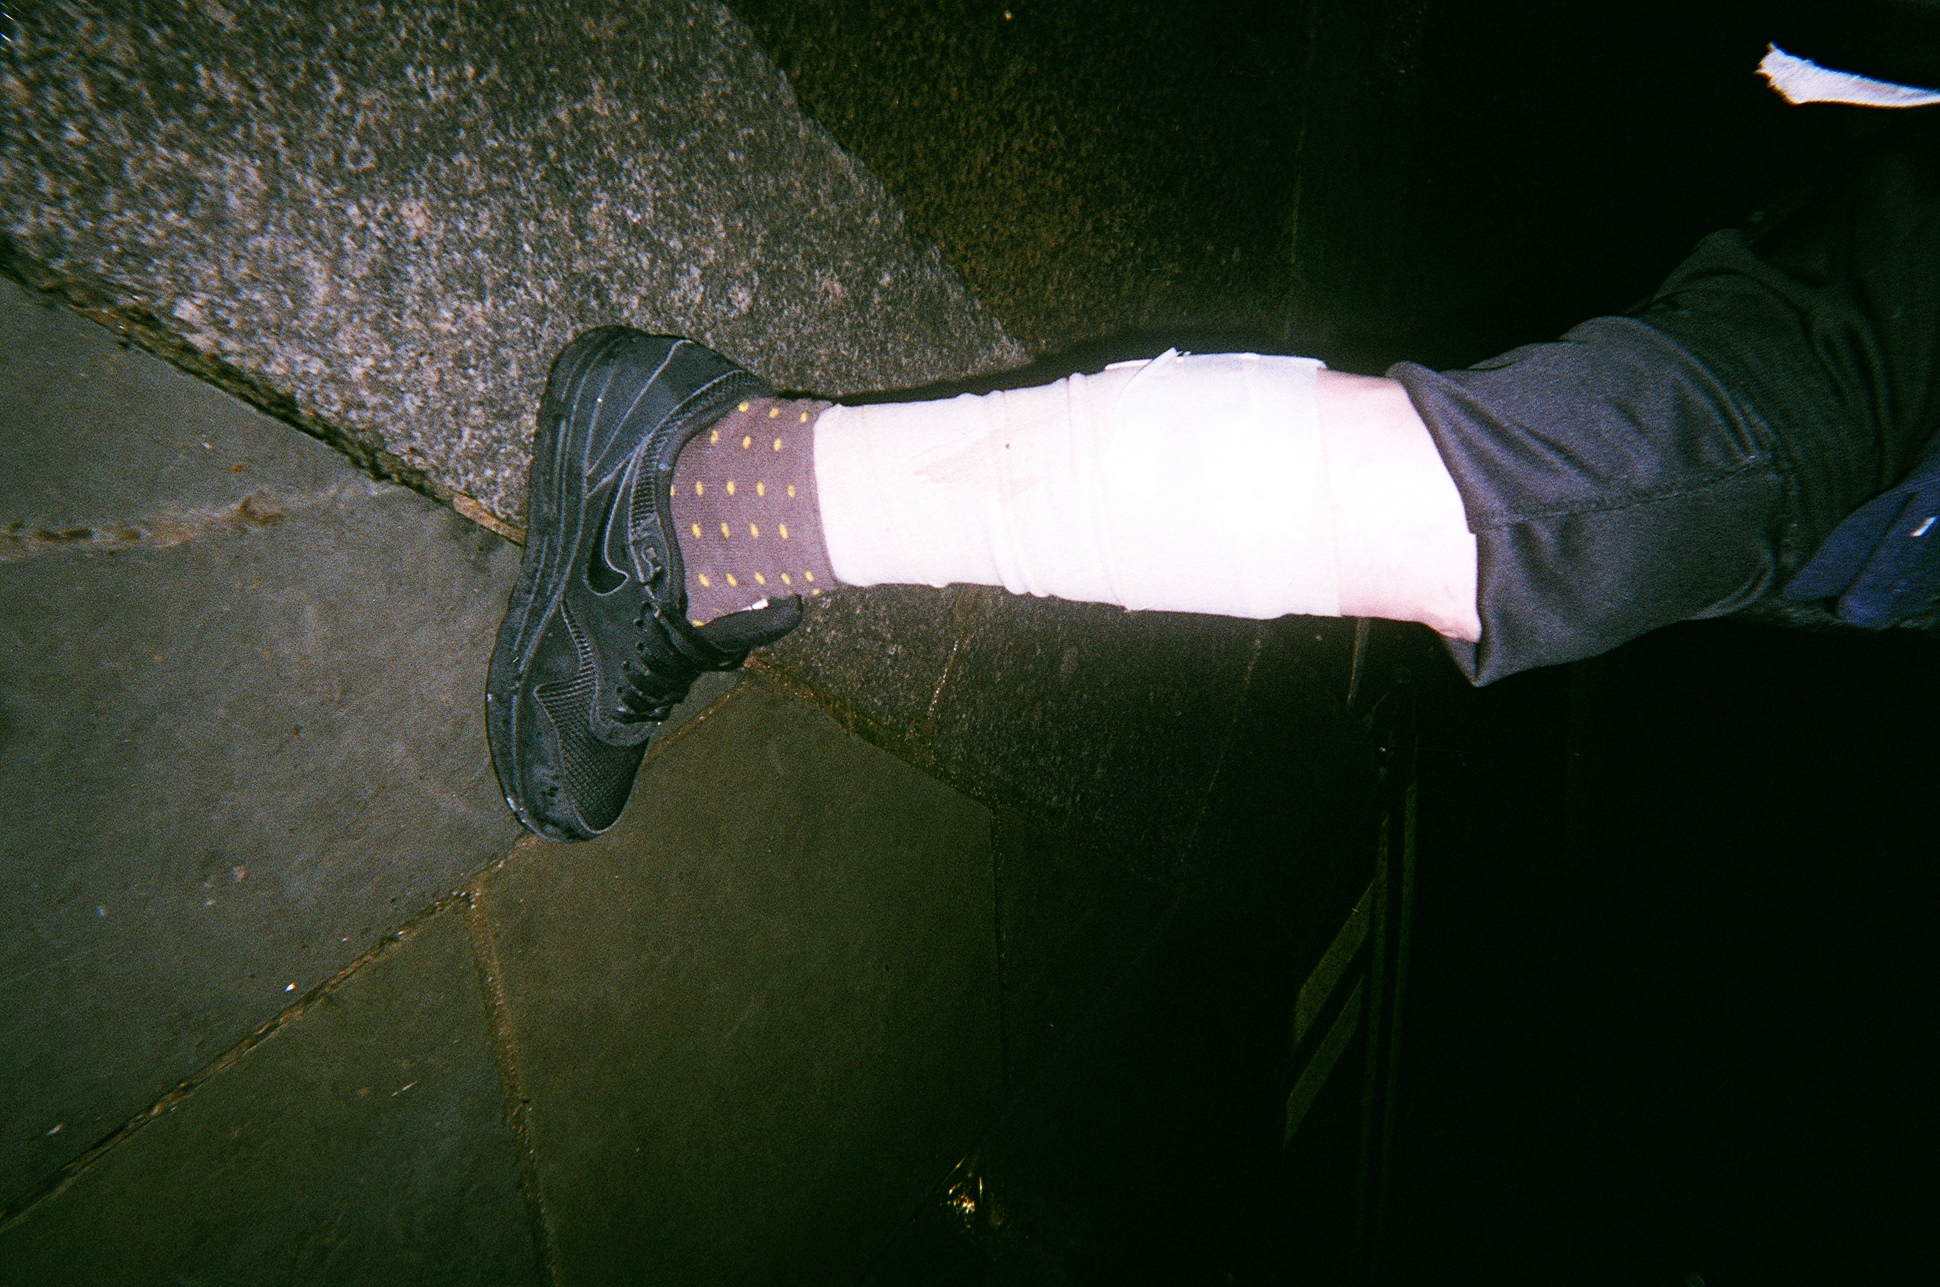 A photograph of a leg, taken by Kelly before she died